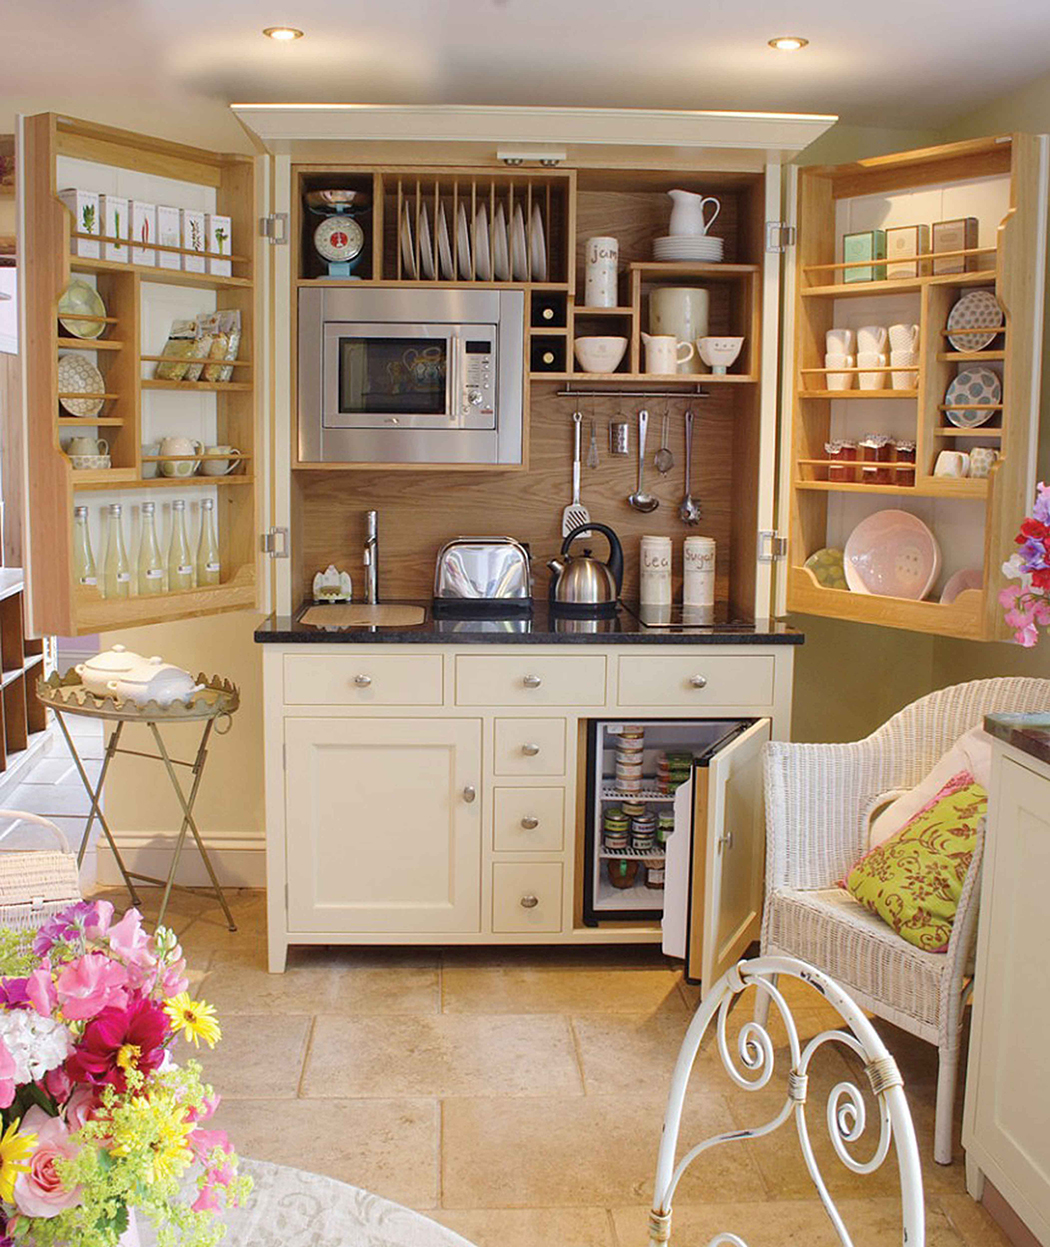 An Entire Kitchen Hidden In A Beautiful Furniture Piece